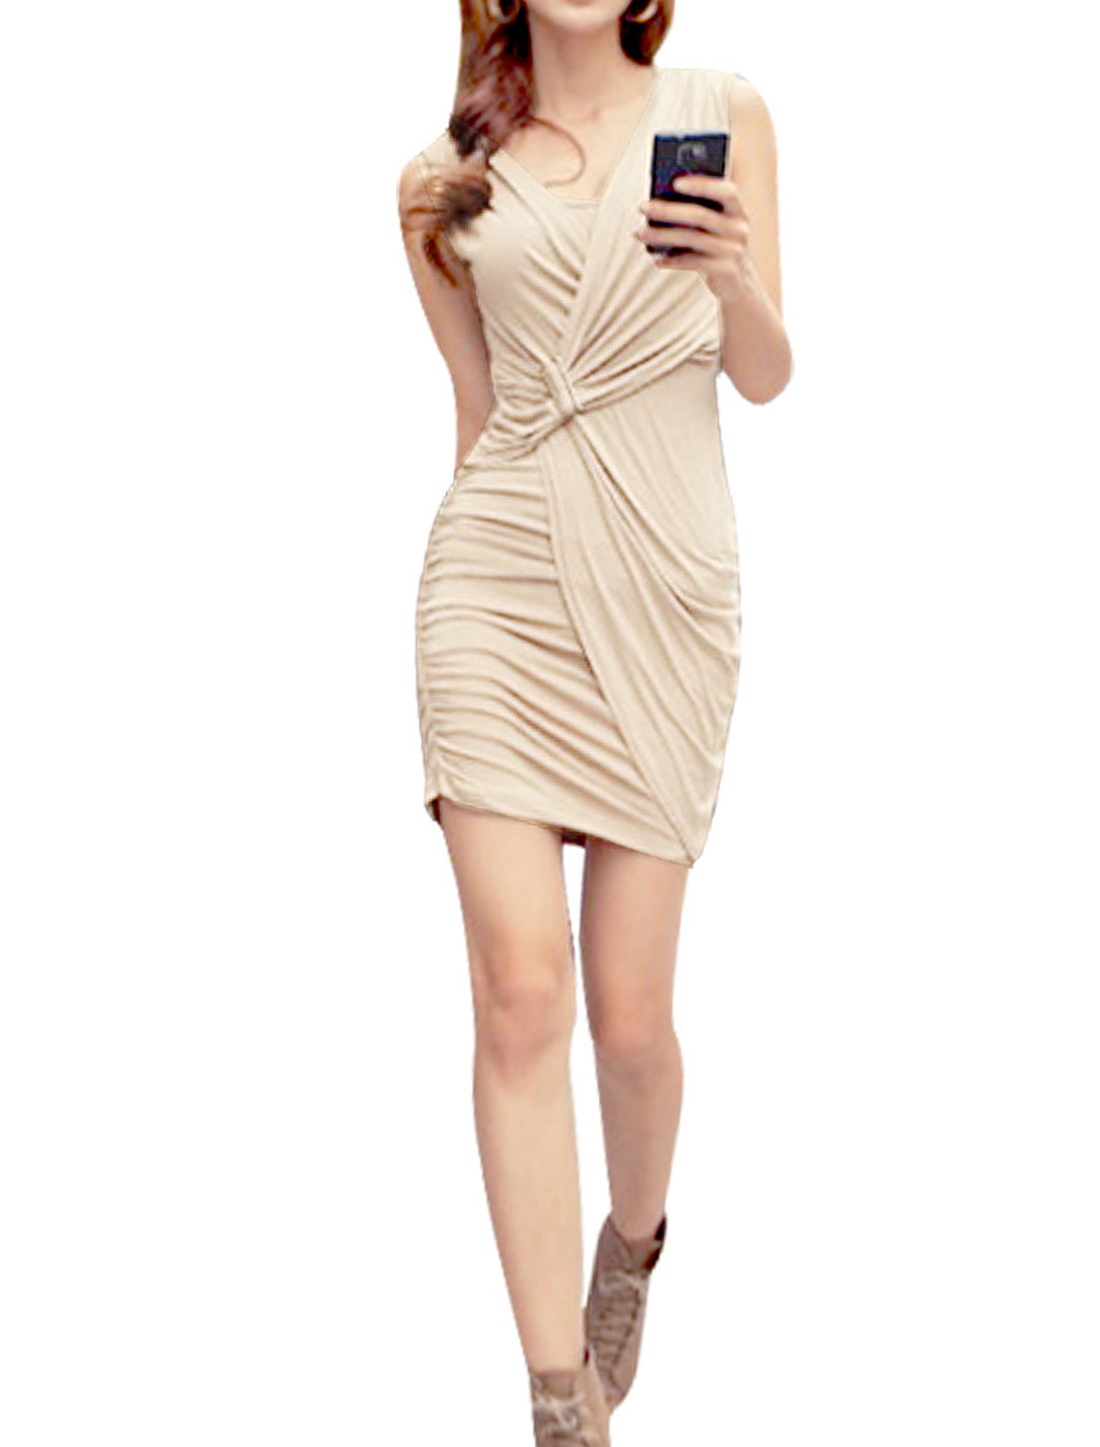 Women Sleeveless Pullover Low Round Neck Hip Hugging Mini Dress Beige XS